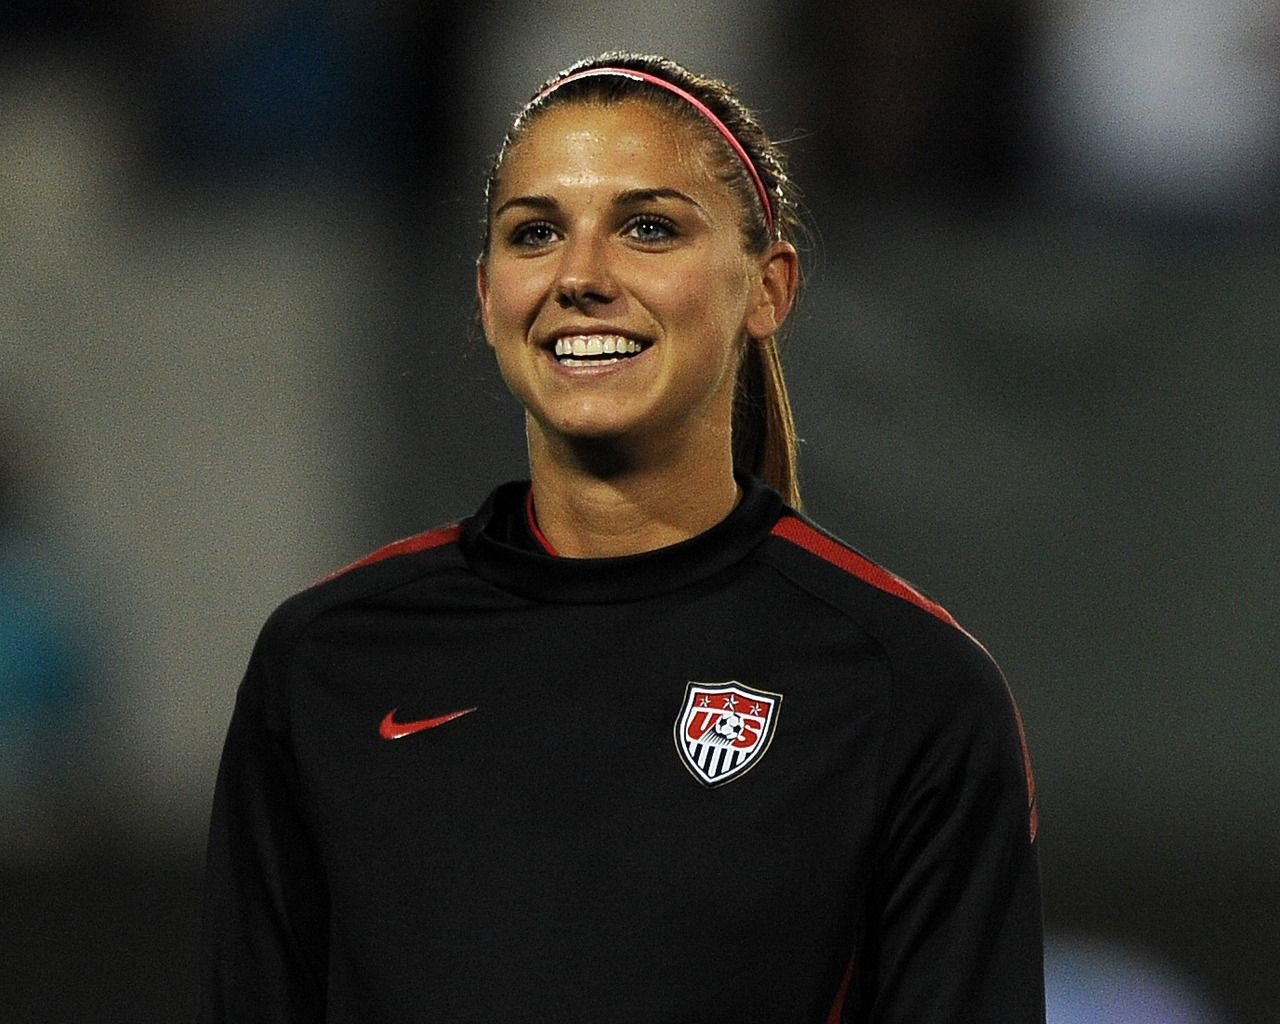 Alex Morgan The Gorgeous Star Of The Us Women S National Soccer Team Alex Morgan Is A Great Soccer Player K Usa Soccer Women Female Athletes Alex Morgan Hot